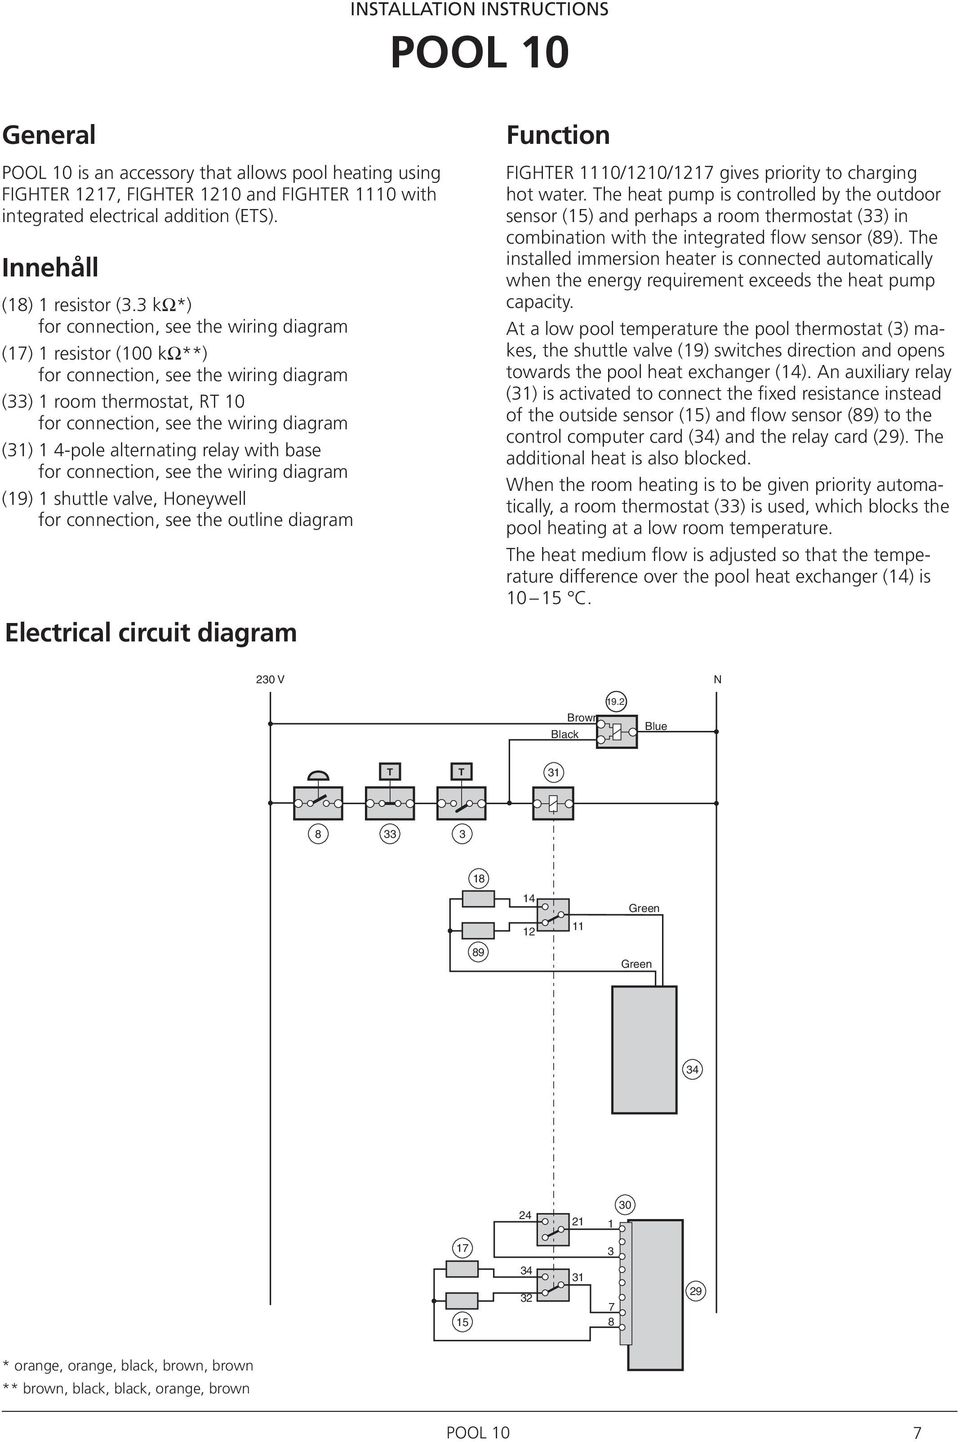 alternating relay with base for connection, see the wiring diagram (19) 1 shuttle valve, Honeywell for connection, see the outline diagram Electrical circuit diagram Function FIGHTER 1110/1210/1217